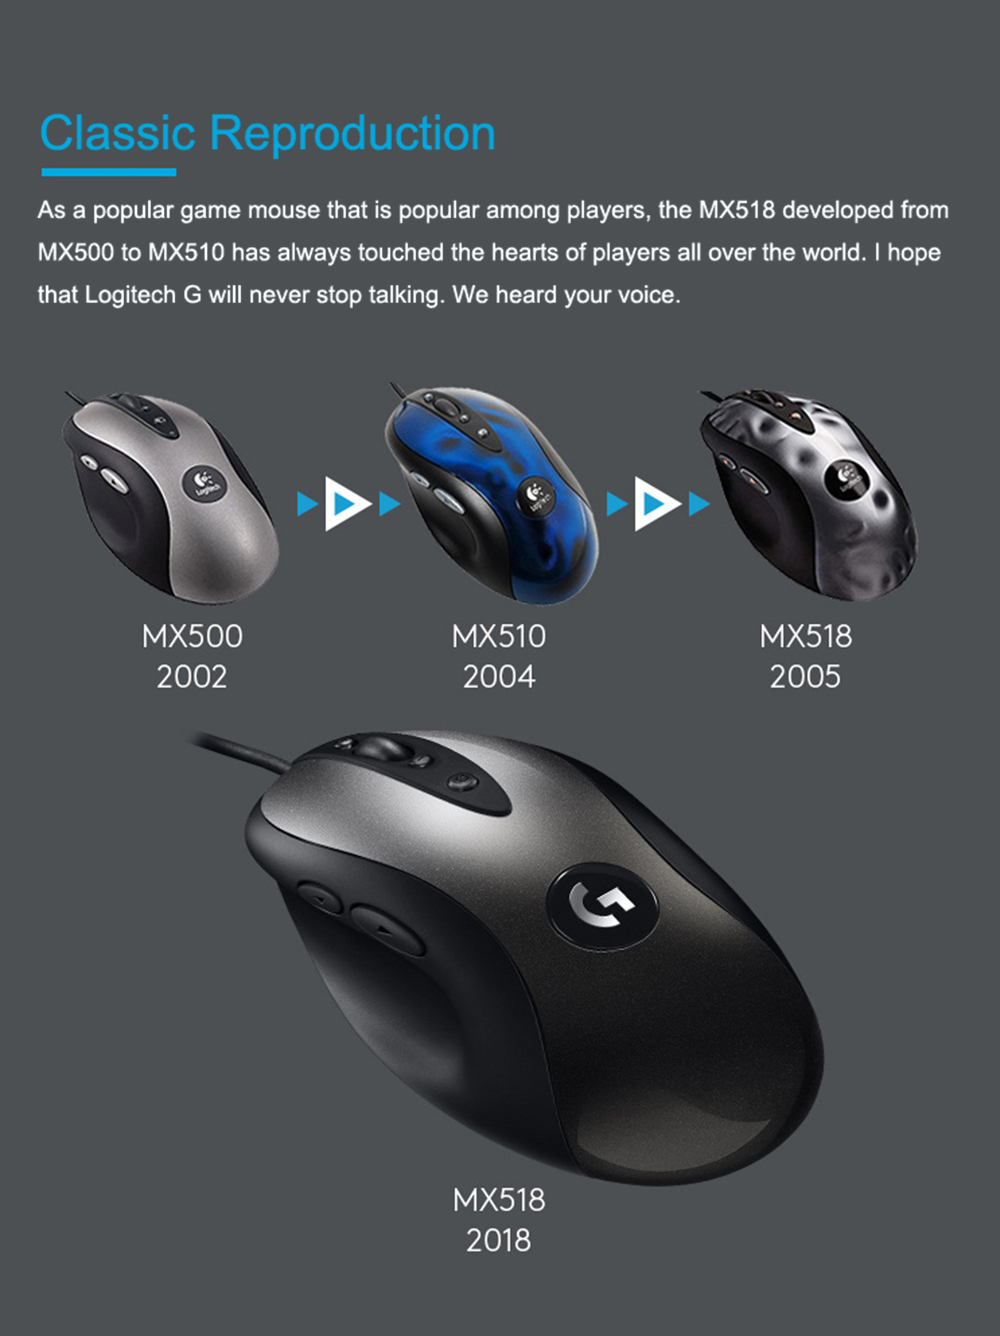 Details about Logitech G MX518 16000DPI Classic Gaming mouse 8 Buttons  HERO16K Sensor mice New